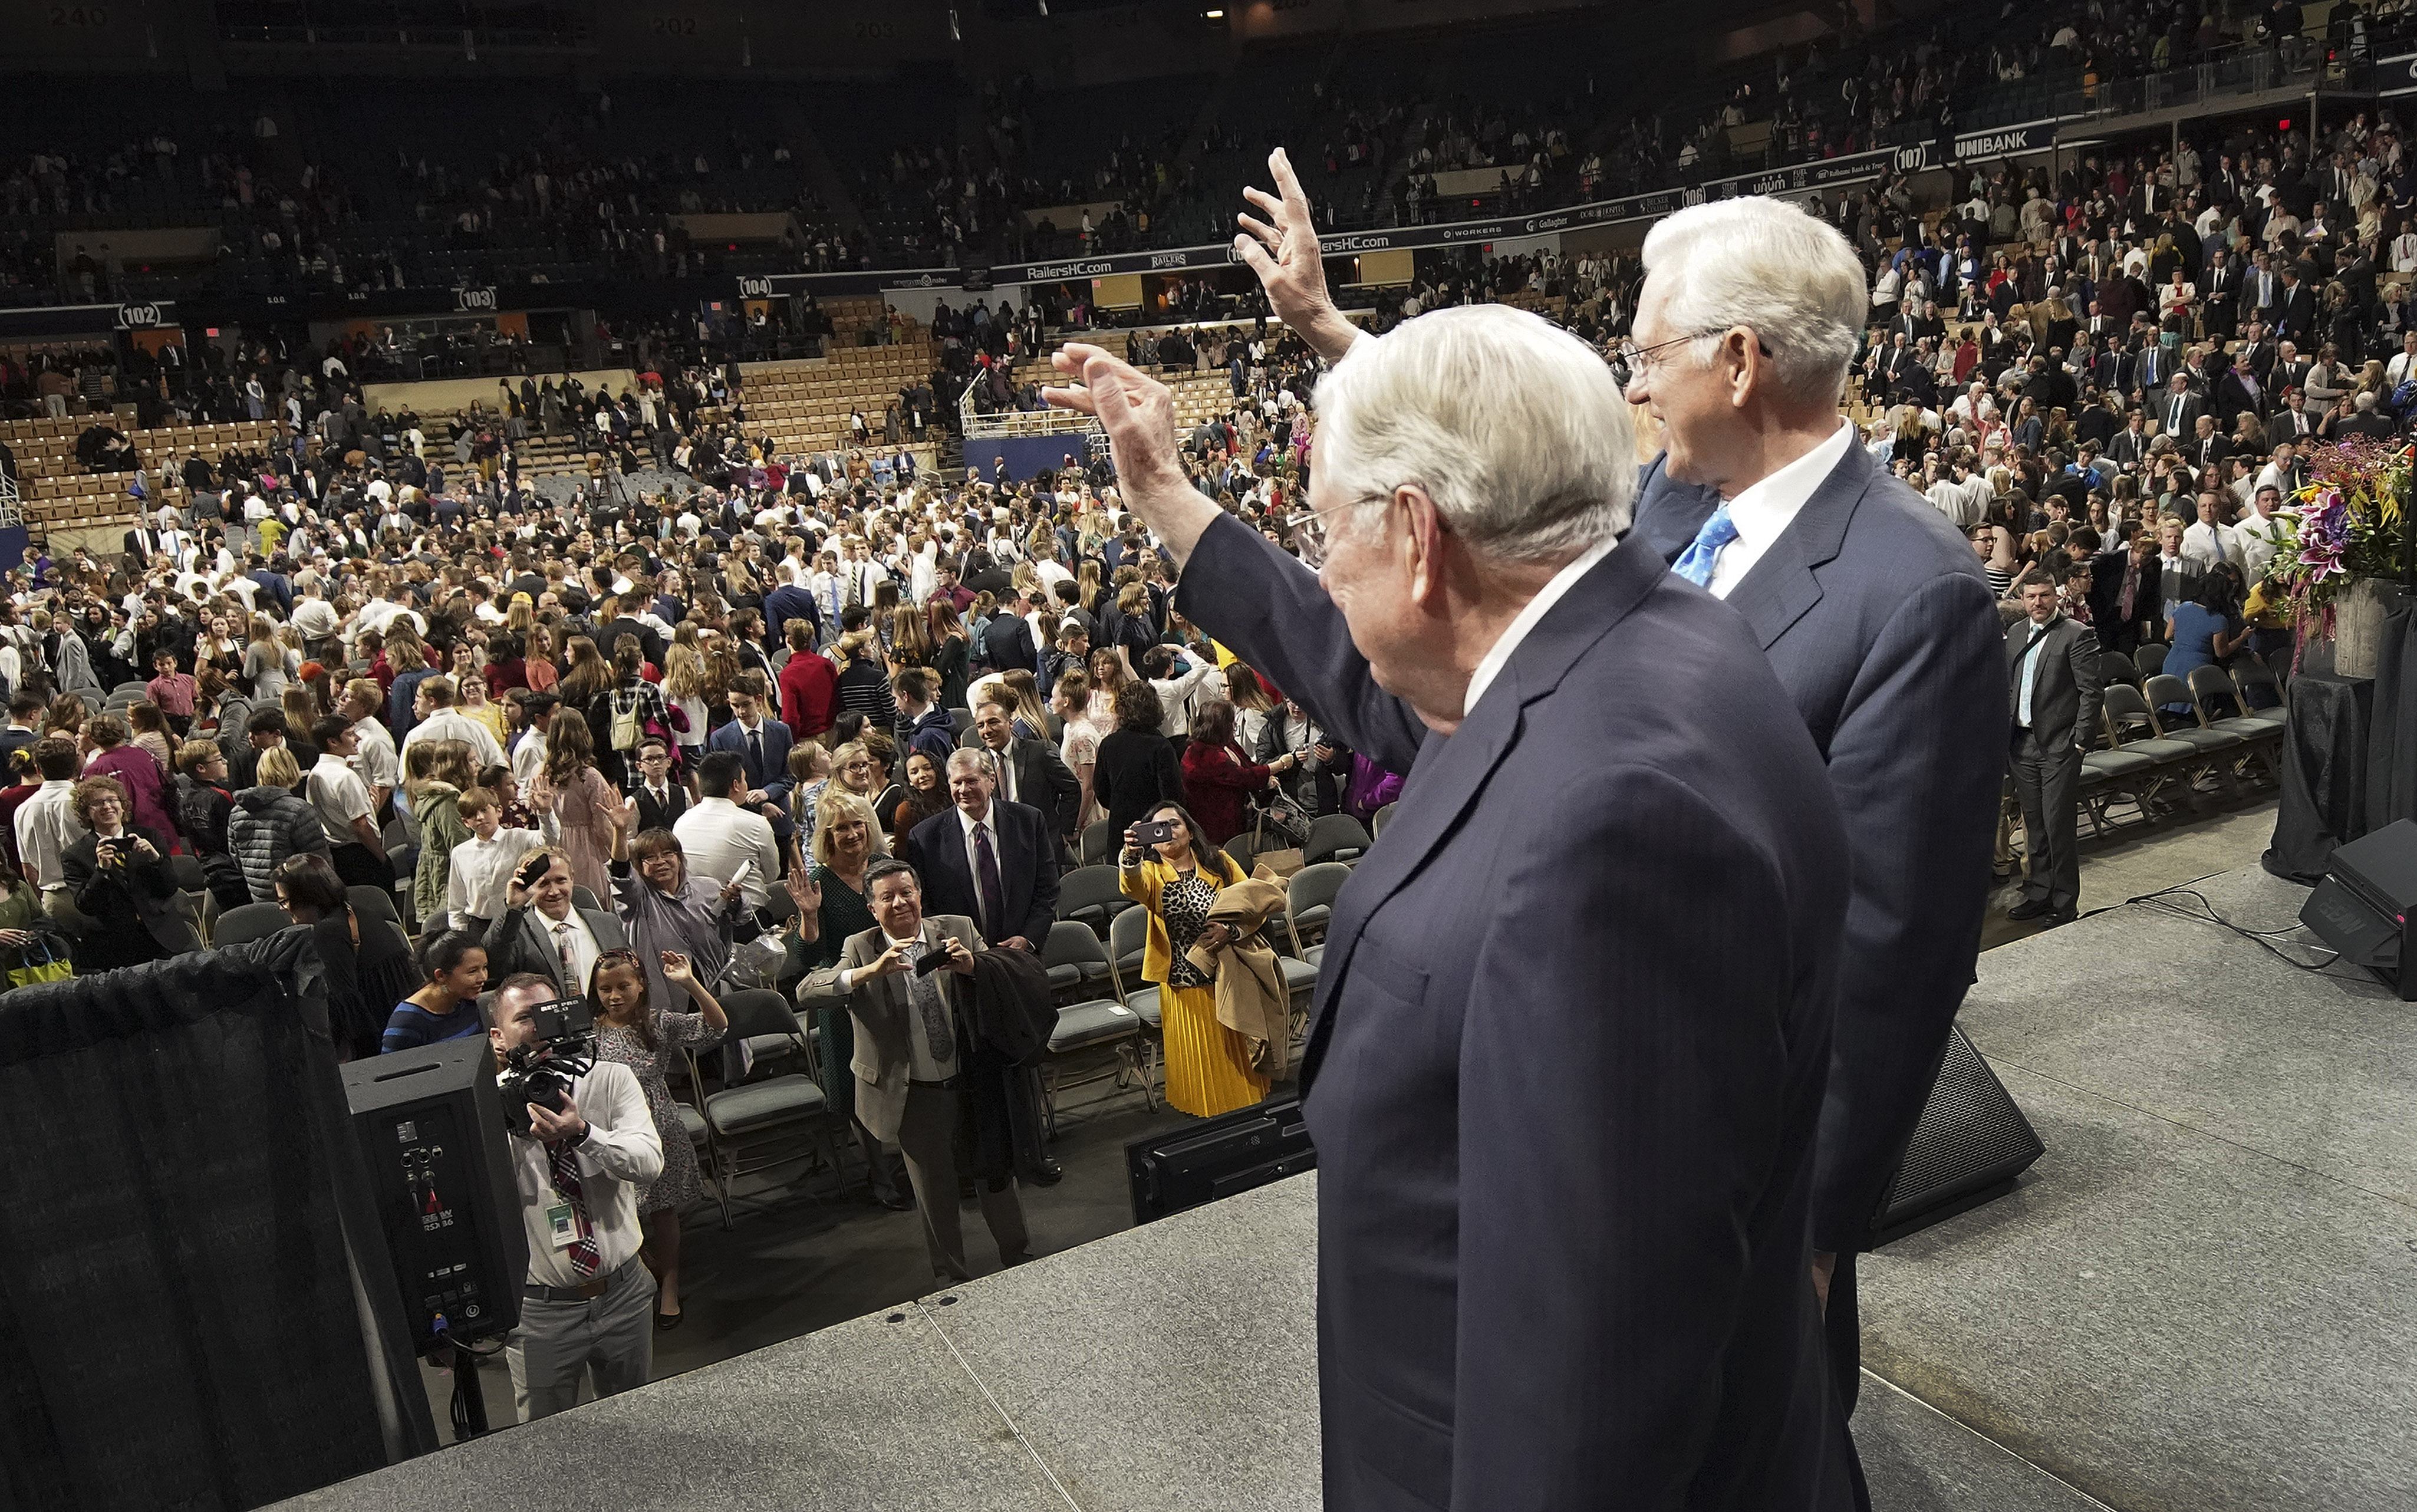 President M. Russell Ballard, acting president of the Quorum of the Twelve Apostles of The Church of Jesus Christ of Latter-day Saints, and Elder D. Todd Christofferson, of the Quorum of the Twelve Apostles, wave to attendees after a devotional in Worcester, Massachusetts, on Sunday, Oct. 20, 2019.